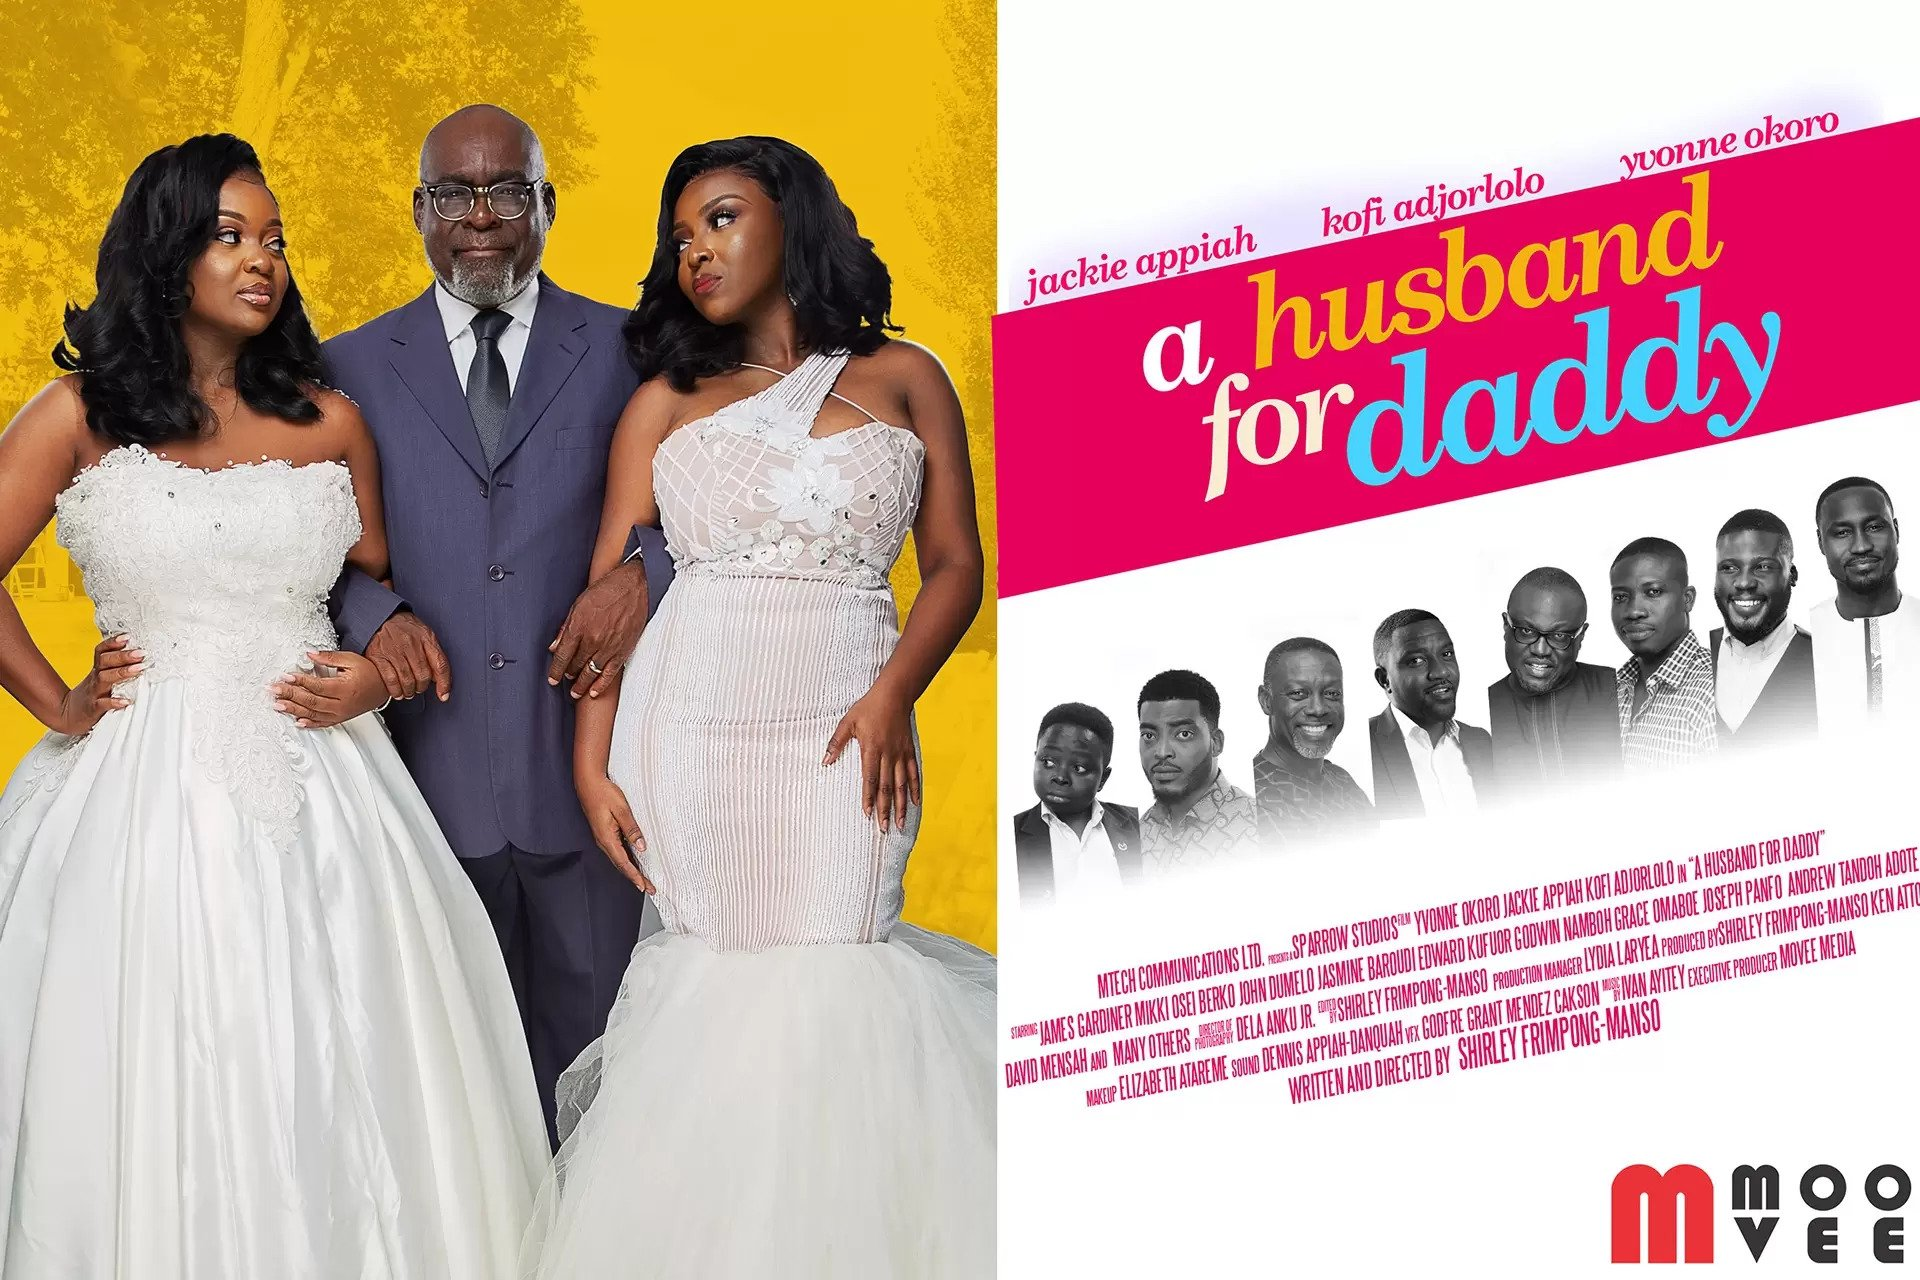 A Husband For Daddy 1 logo